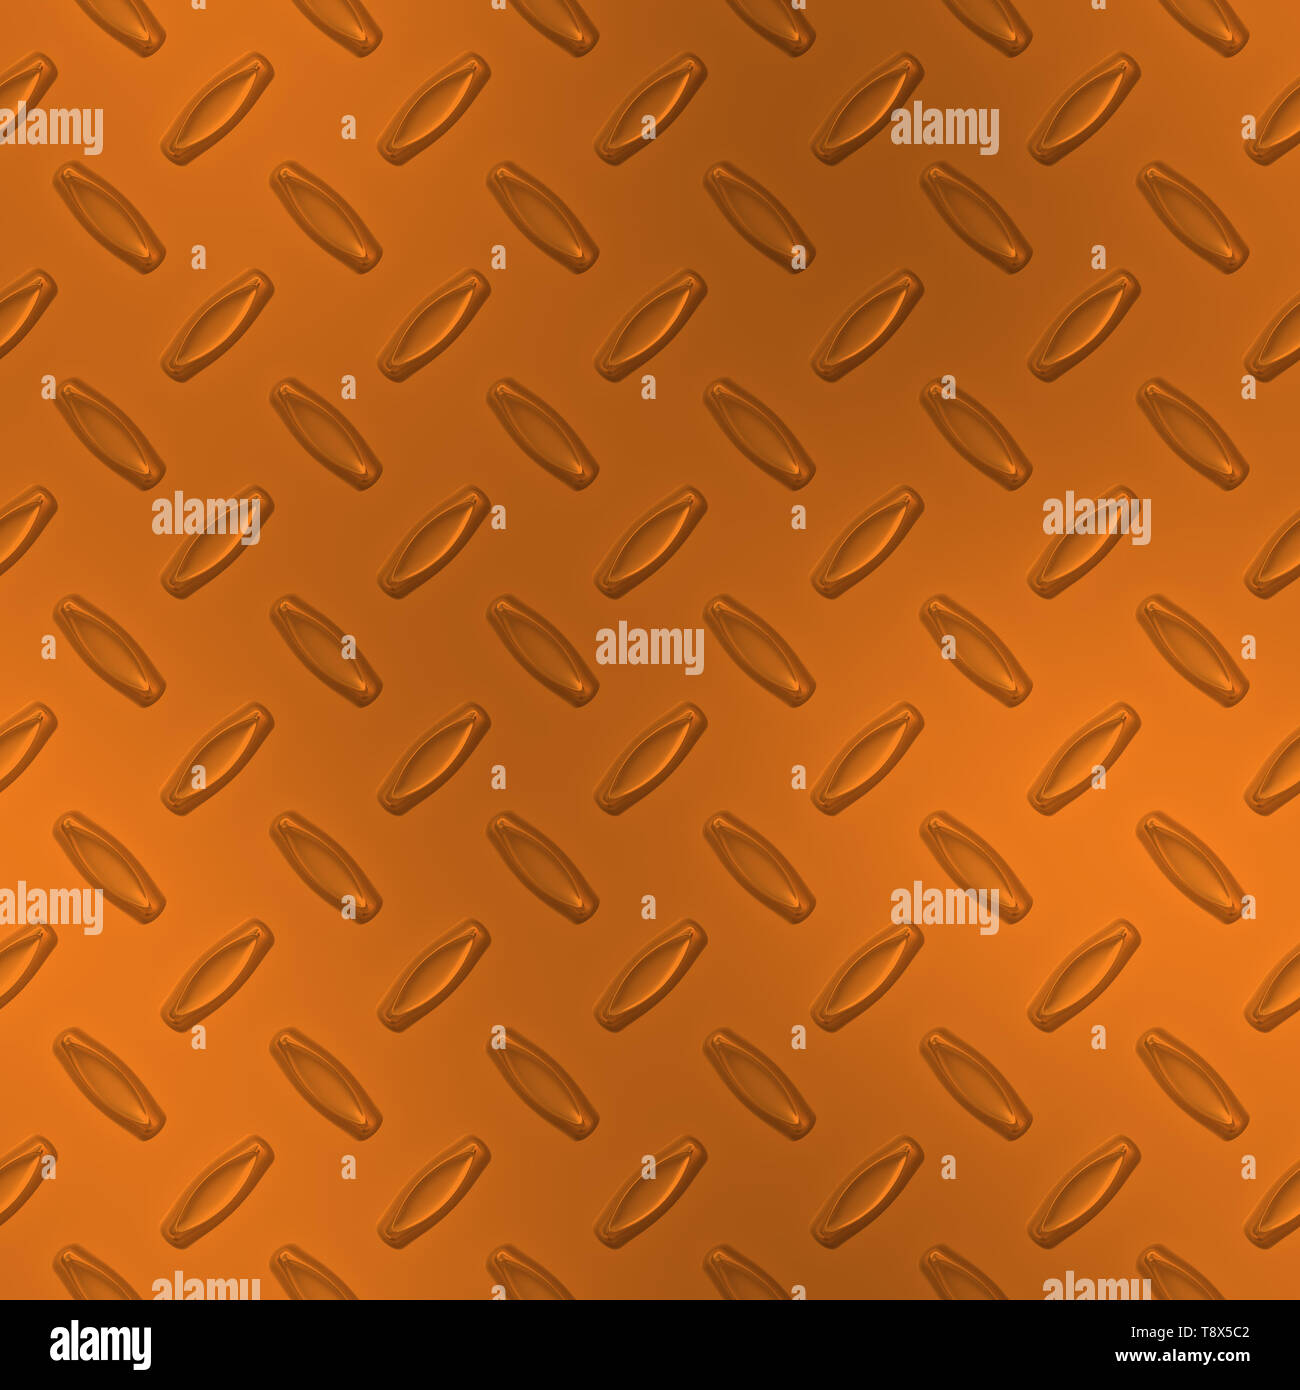 Orange Diamond Plate Metal Seamless Texture Tile - Stock Image